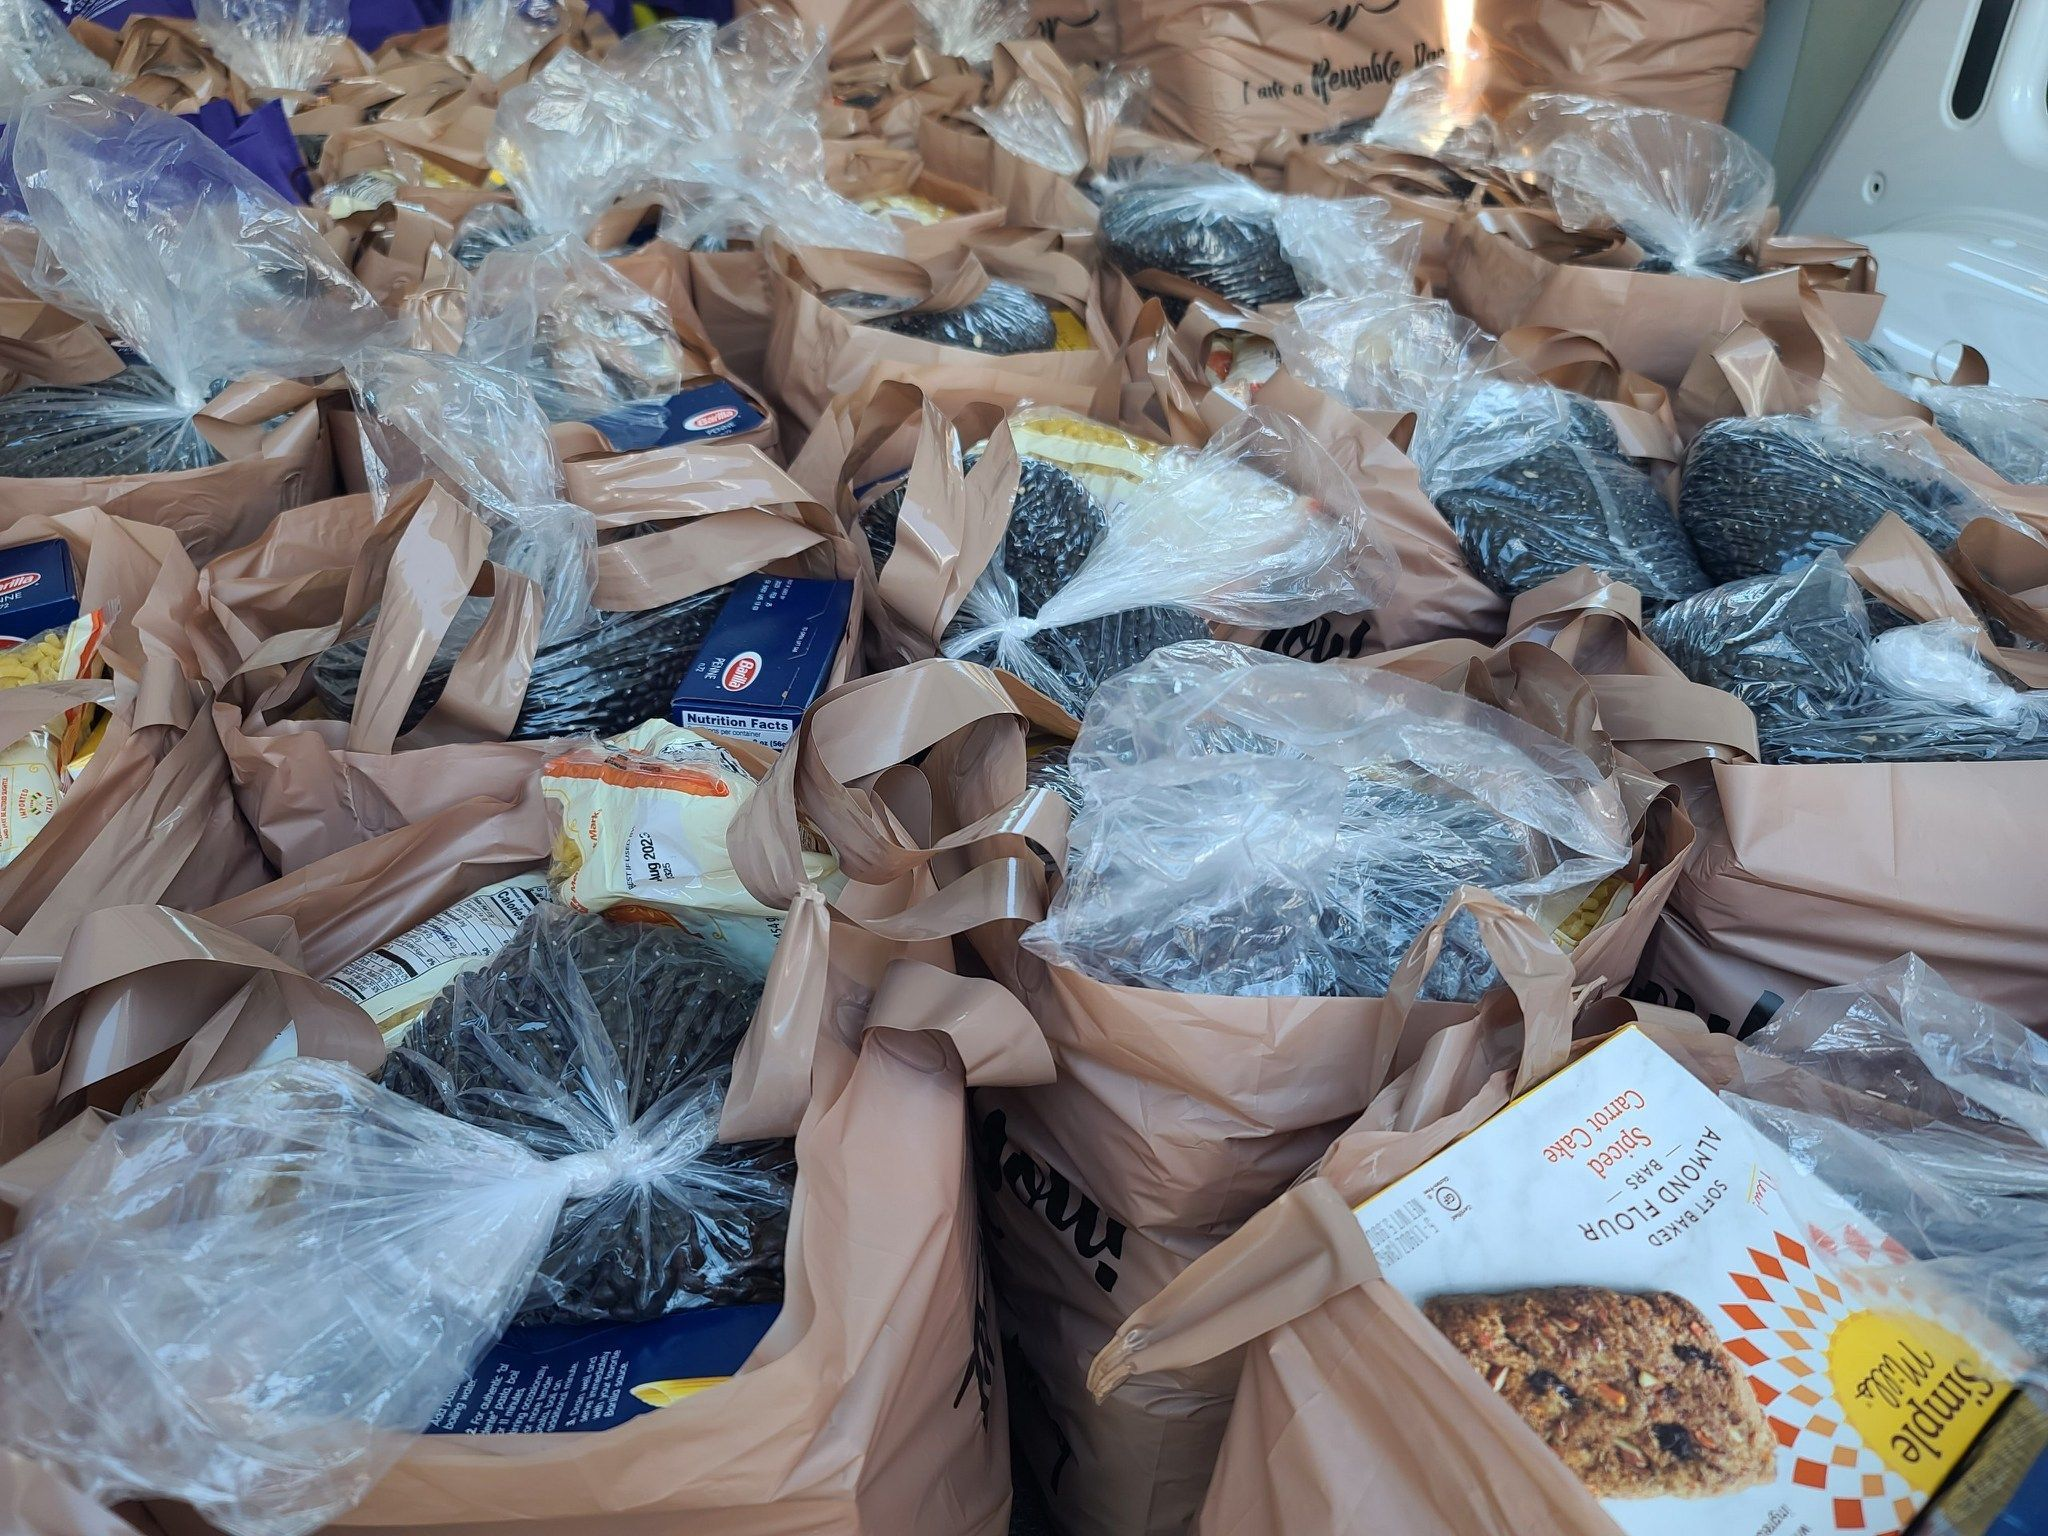 Monthly Food Distribution in Riviera Beach 2nd Tuesday of Every Month From 4p-6p